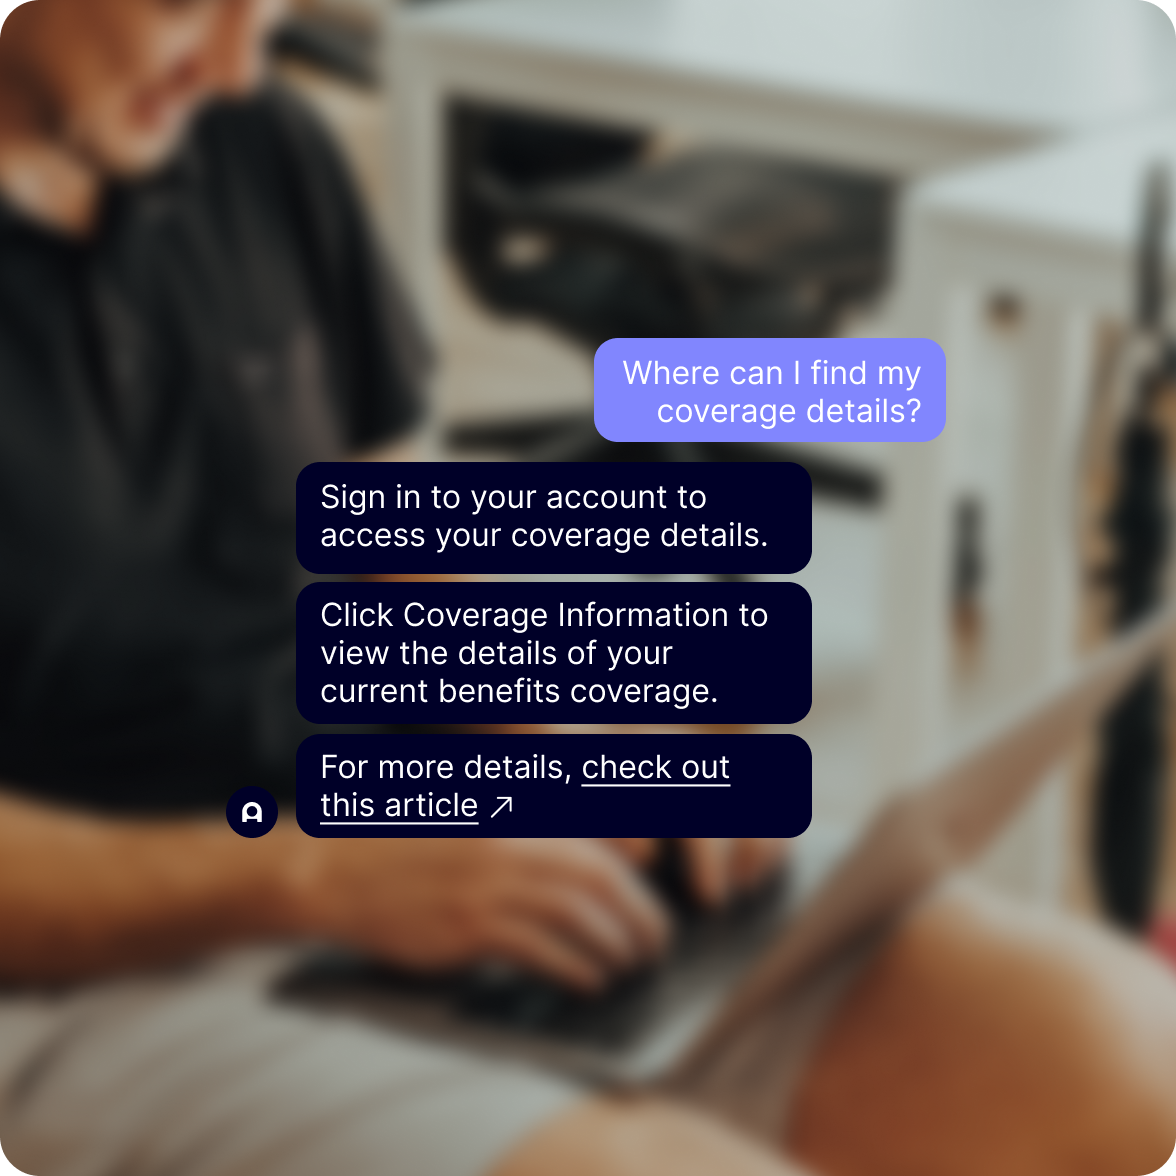 Improve CX for your customers. The best chatbot in the insurance industry. Period.